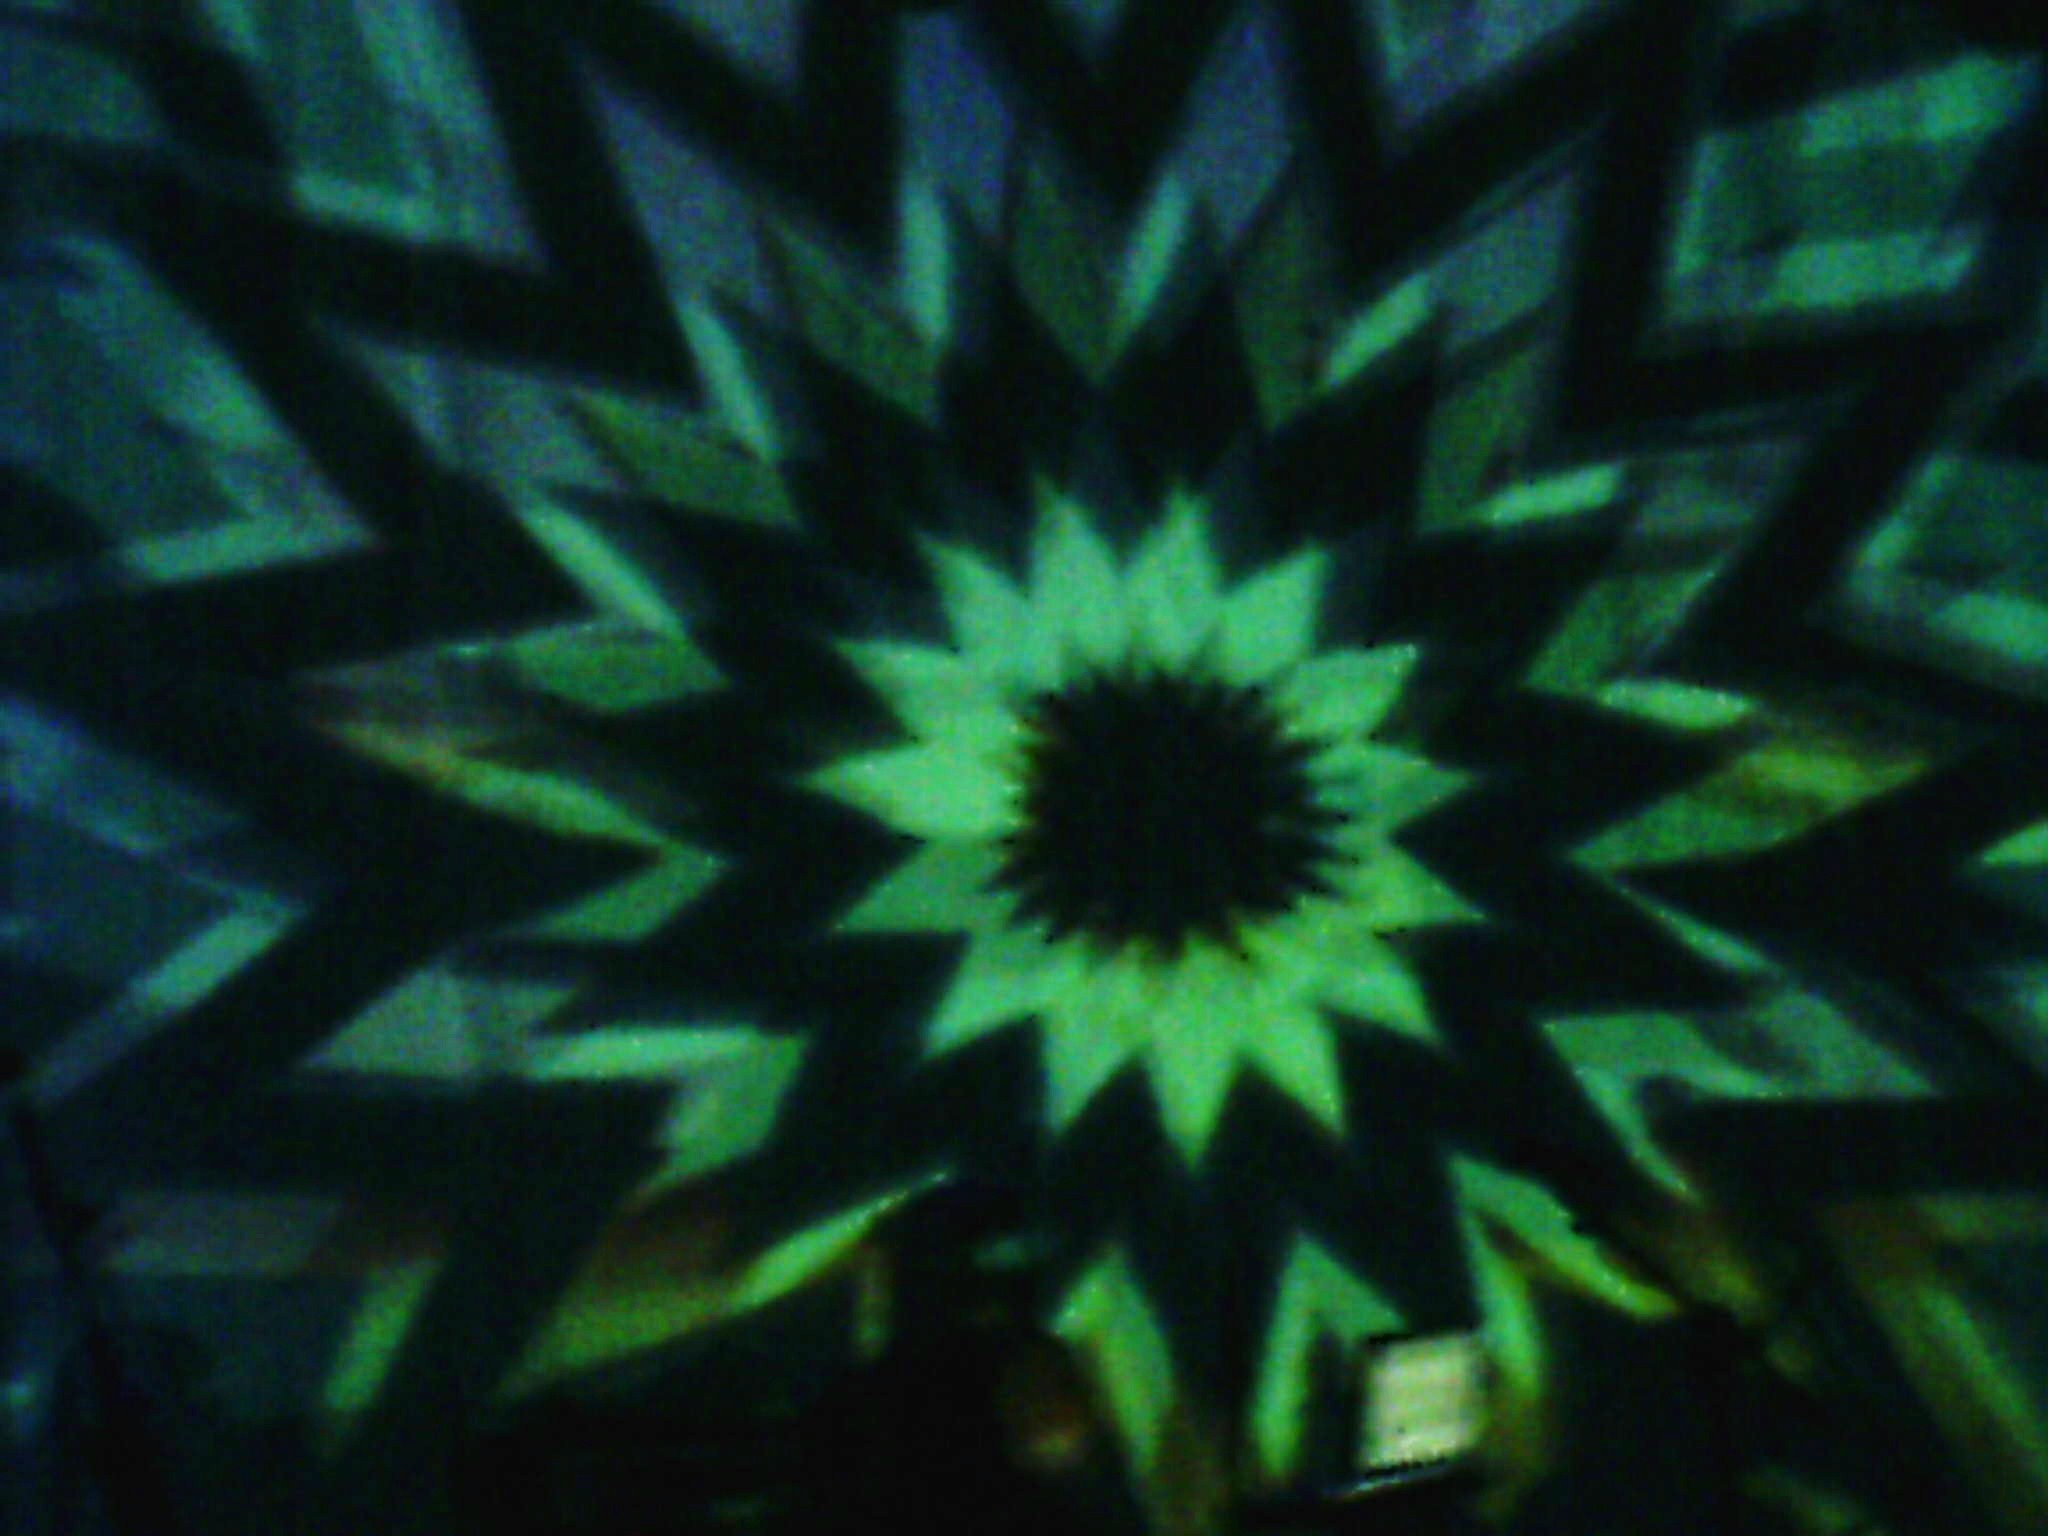 Hawkwind live at The Forum